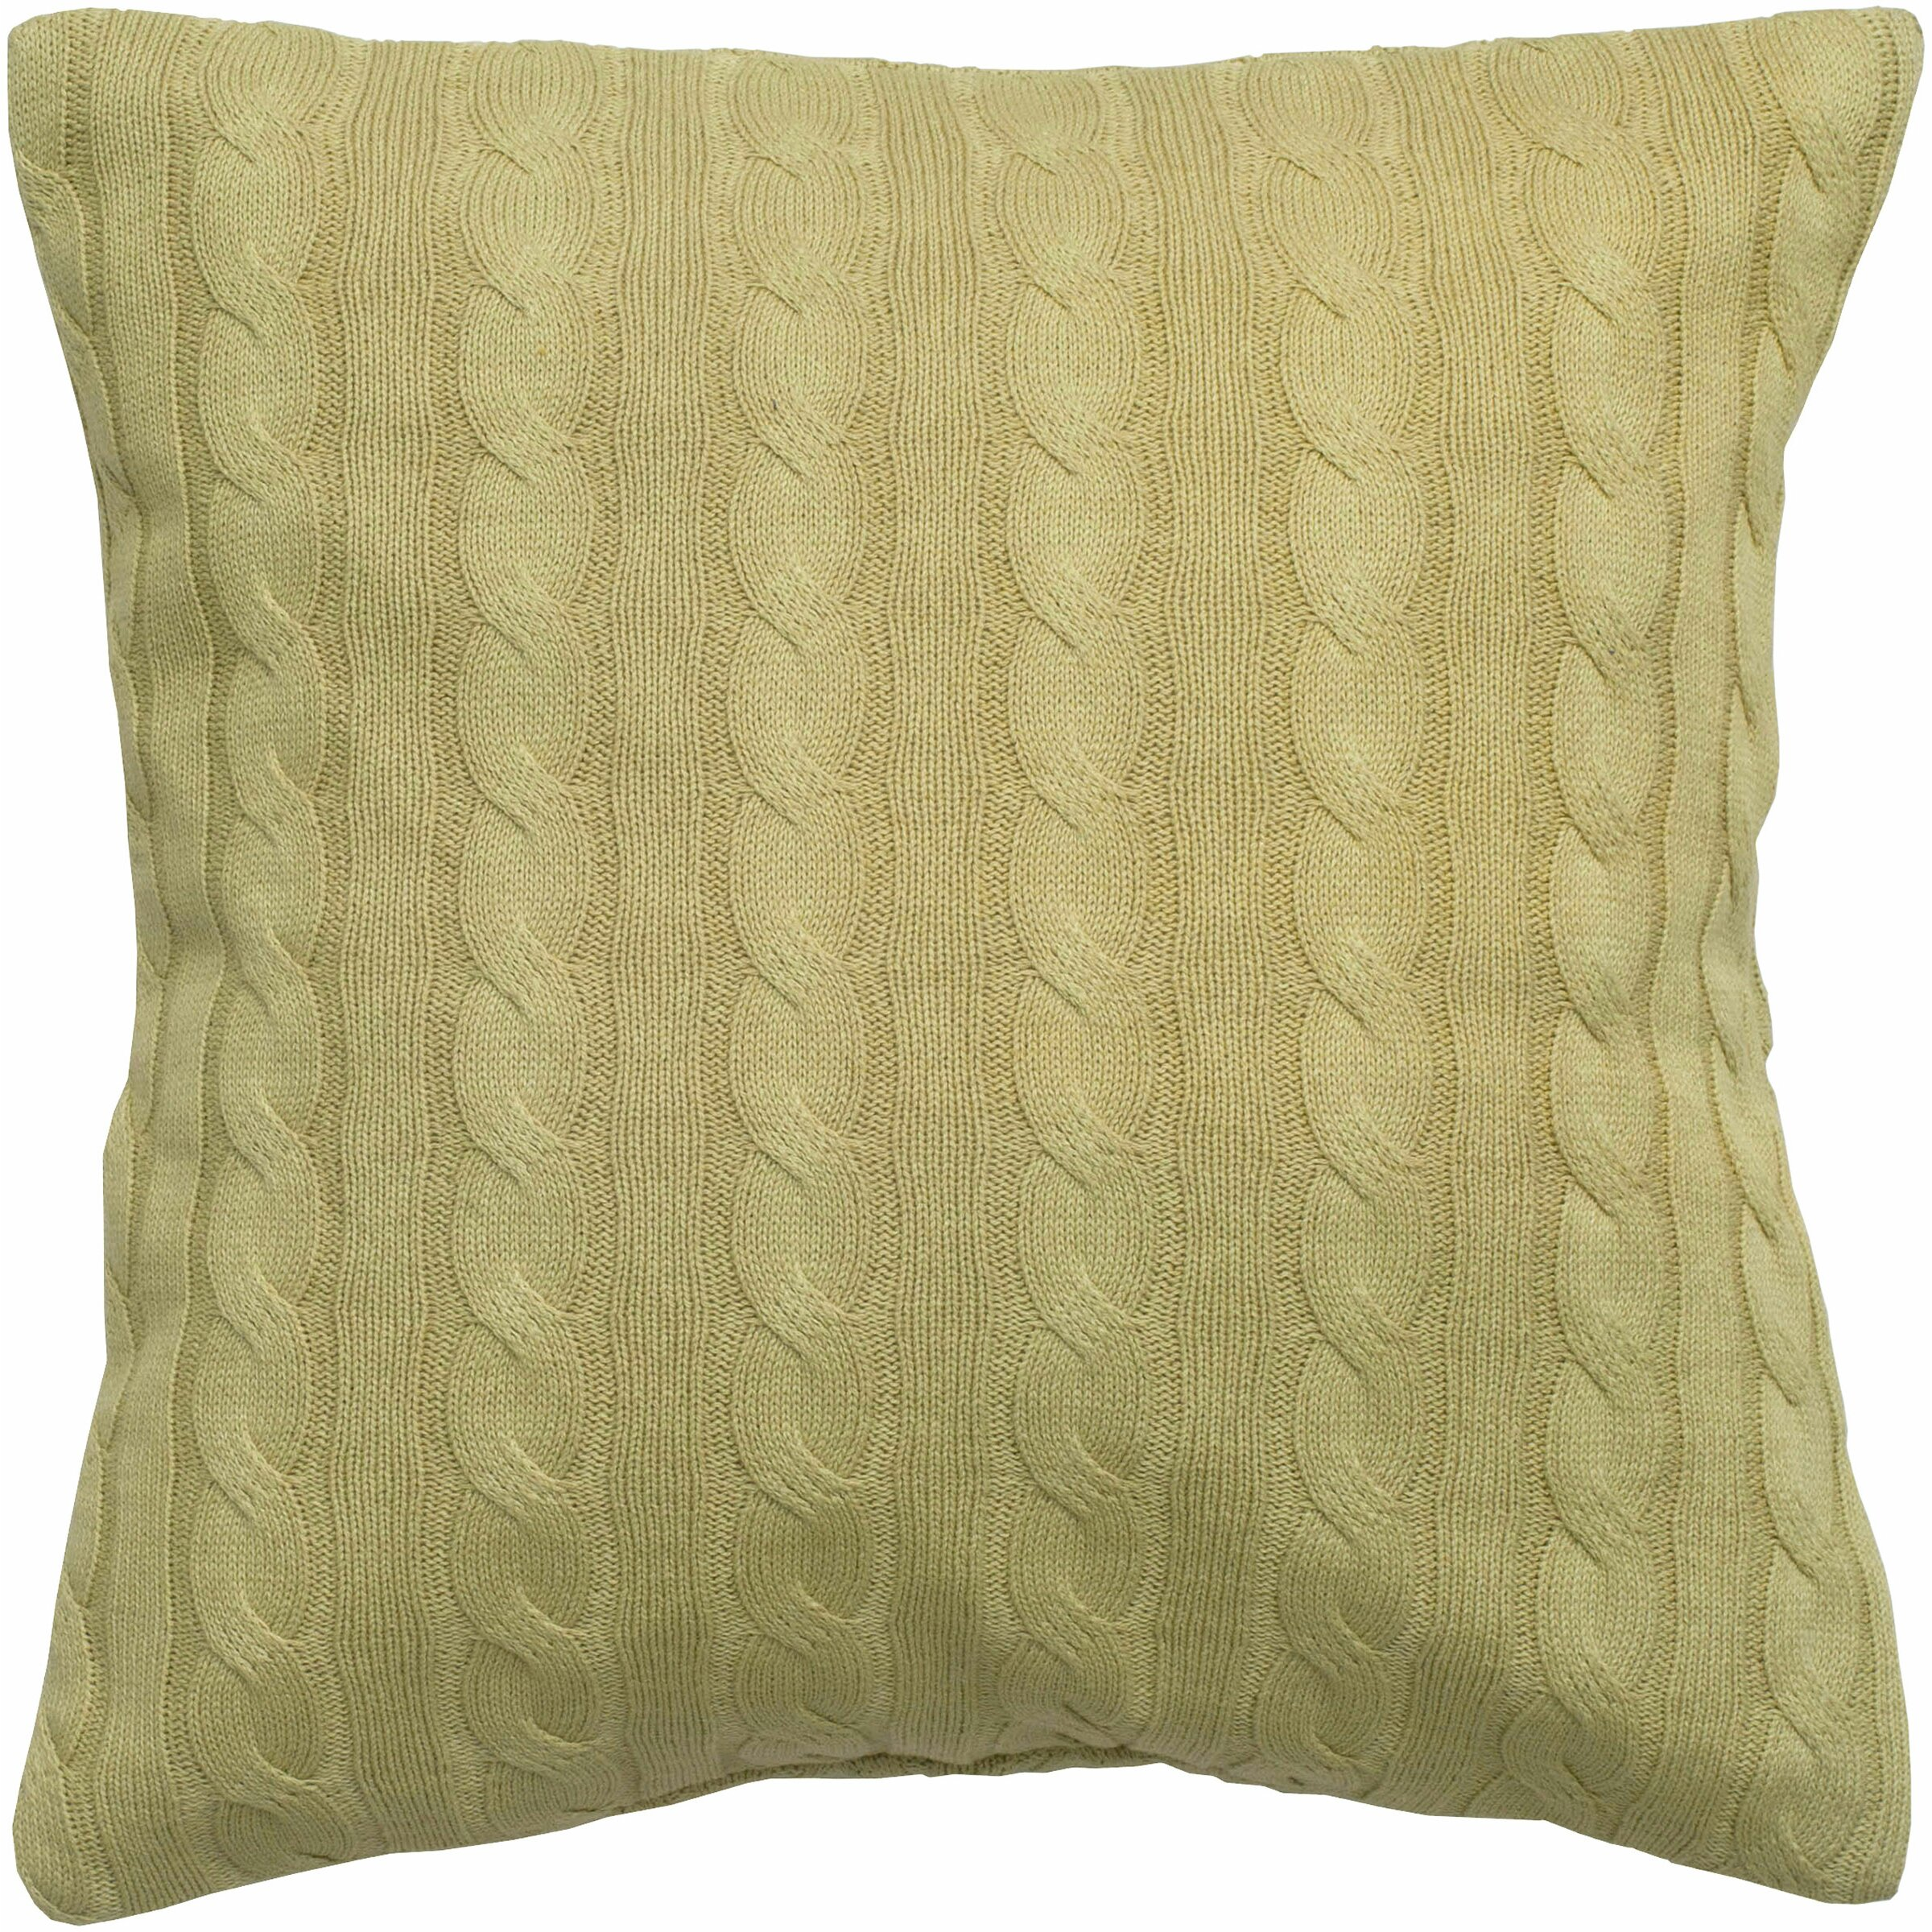 Throw Pillows With Buttons : Wildon Home Cable Knit Wooden Button Closure Throw Pillow & Reviews Wayfair